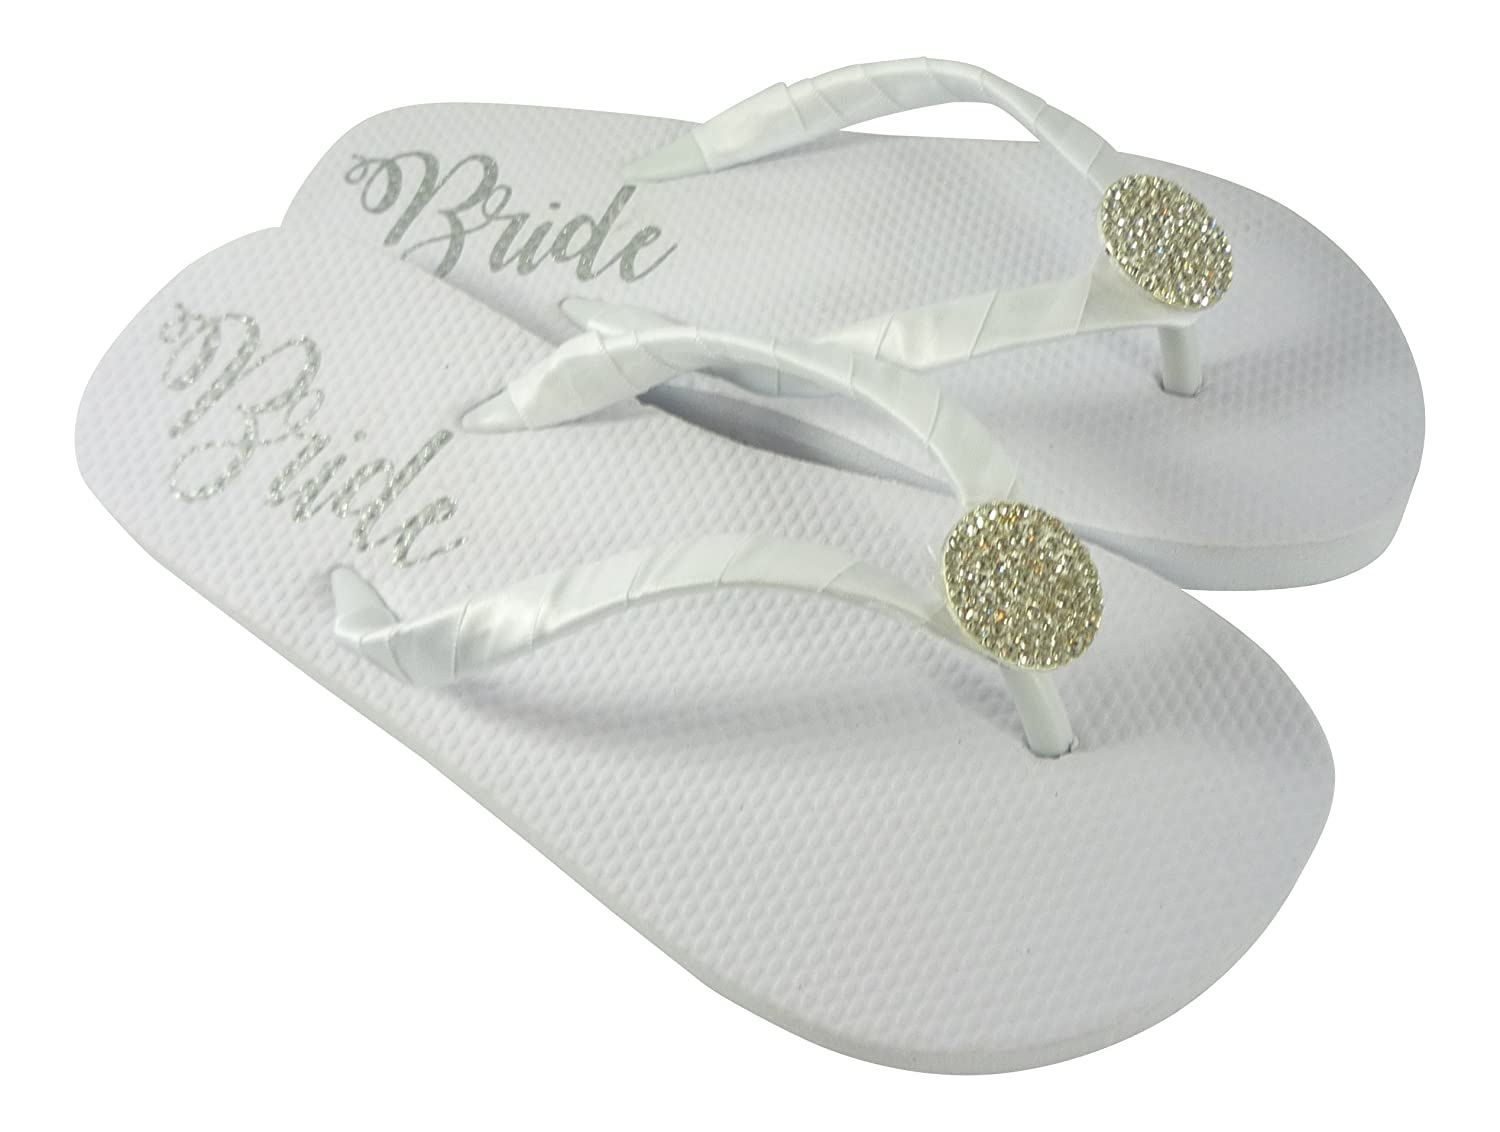 ddbbbe4be Amazon.com  Bride Flip Flops  Rhinestone Centerpiece Jewel Bride Sole Flat  Wedding  Handmade